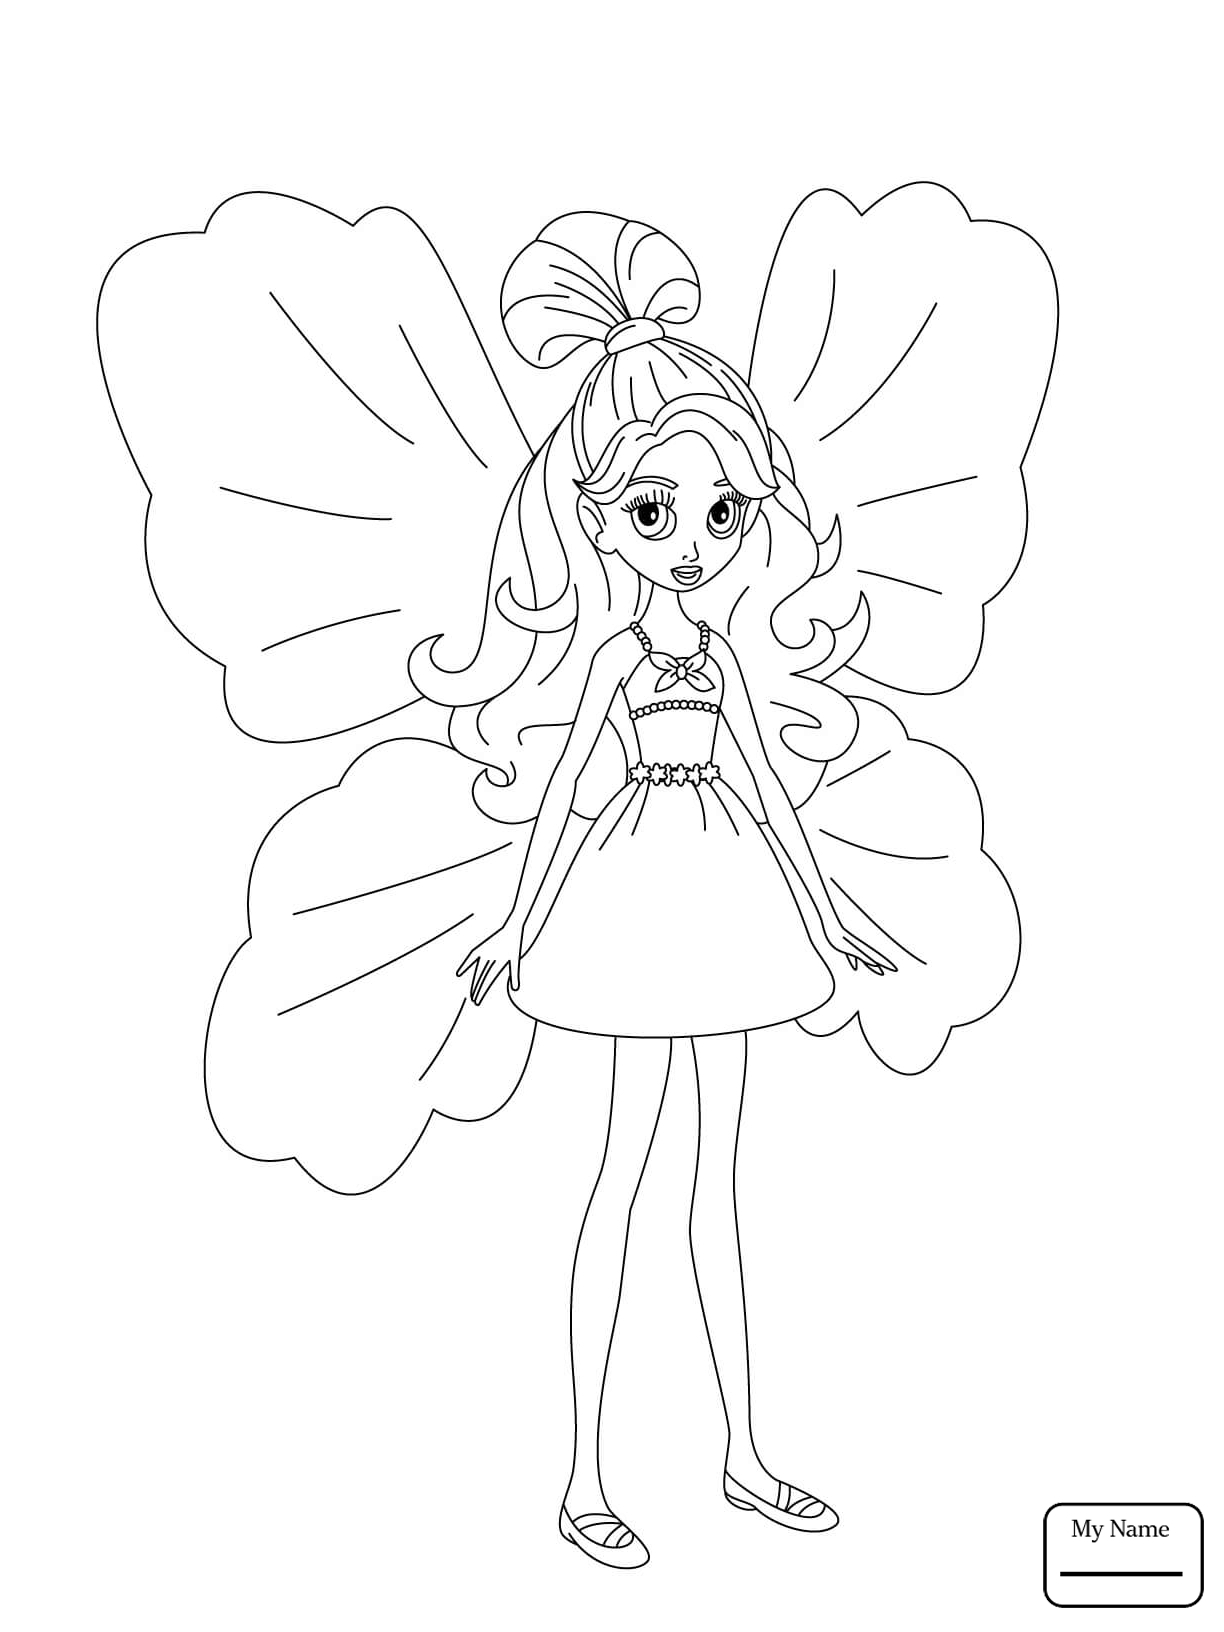 thumbelina coloring pages thumbelina 1994 coloring pages coloring pages pages thumbelina coloring